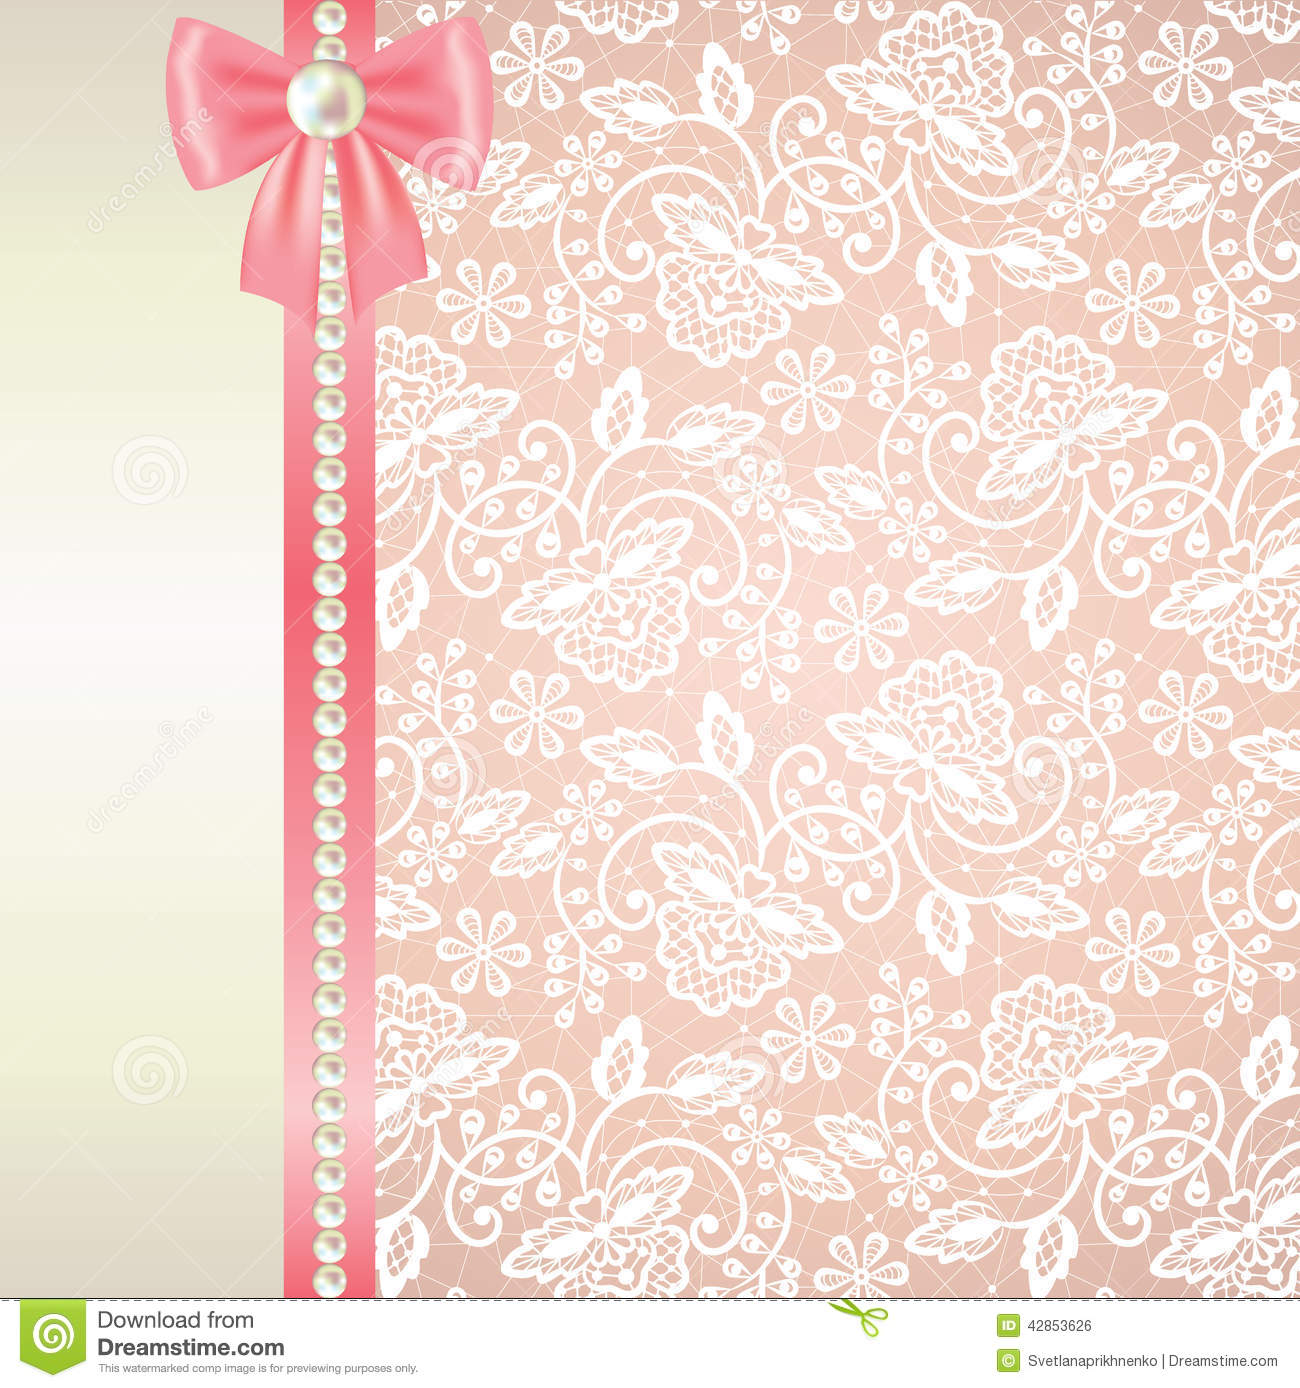 Music Baby Shower Invitations with luxury invitation layout